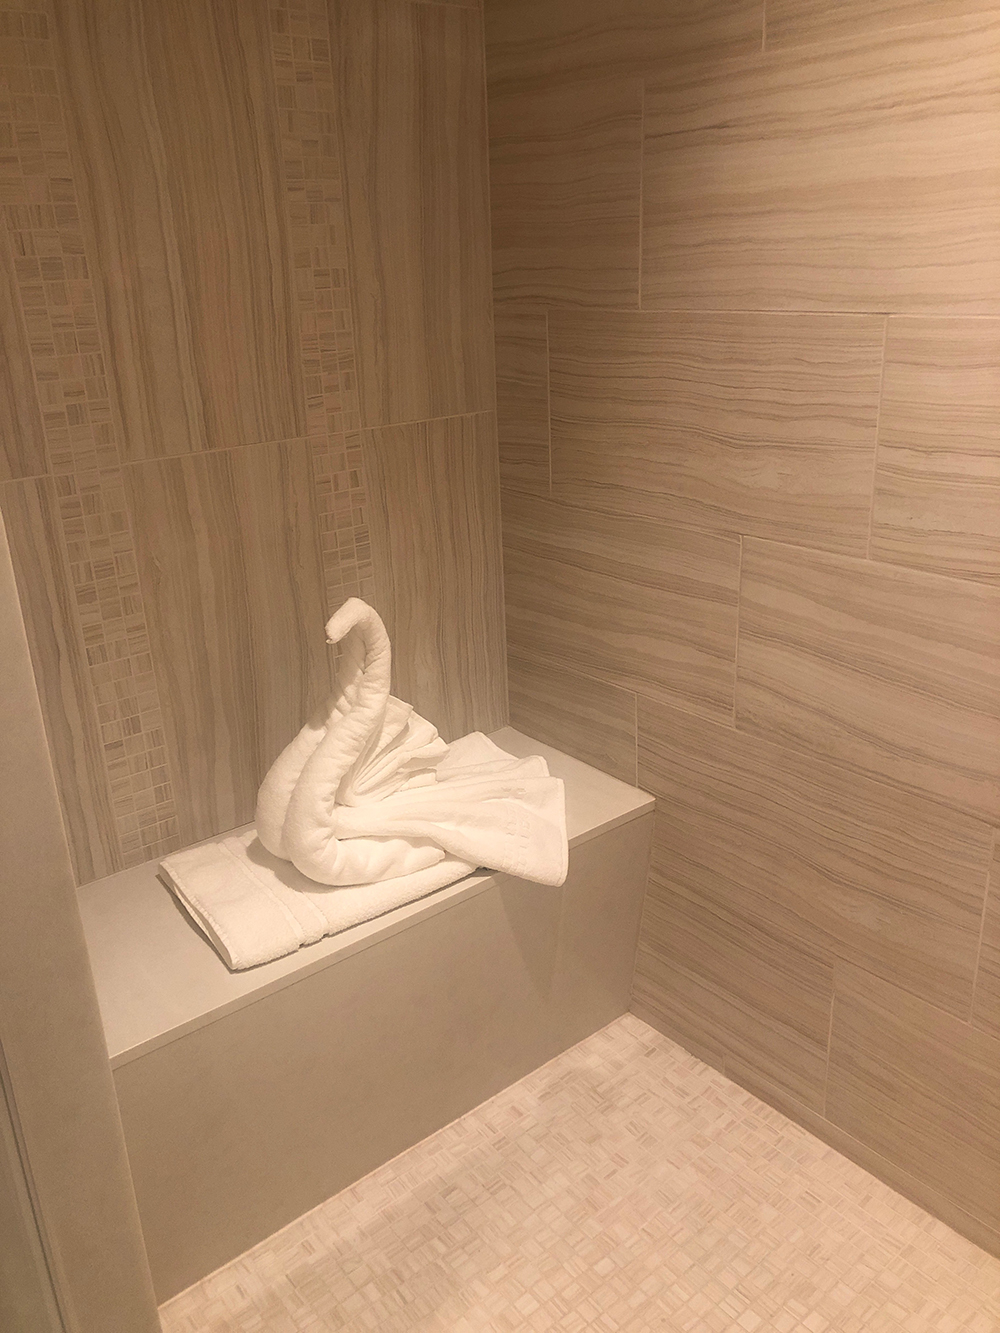 A beautifully folded towel swan awaited in shower of our room at the resort.